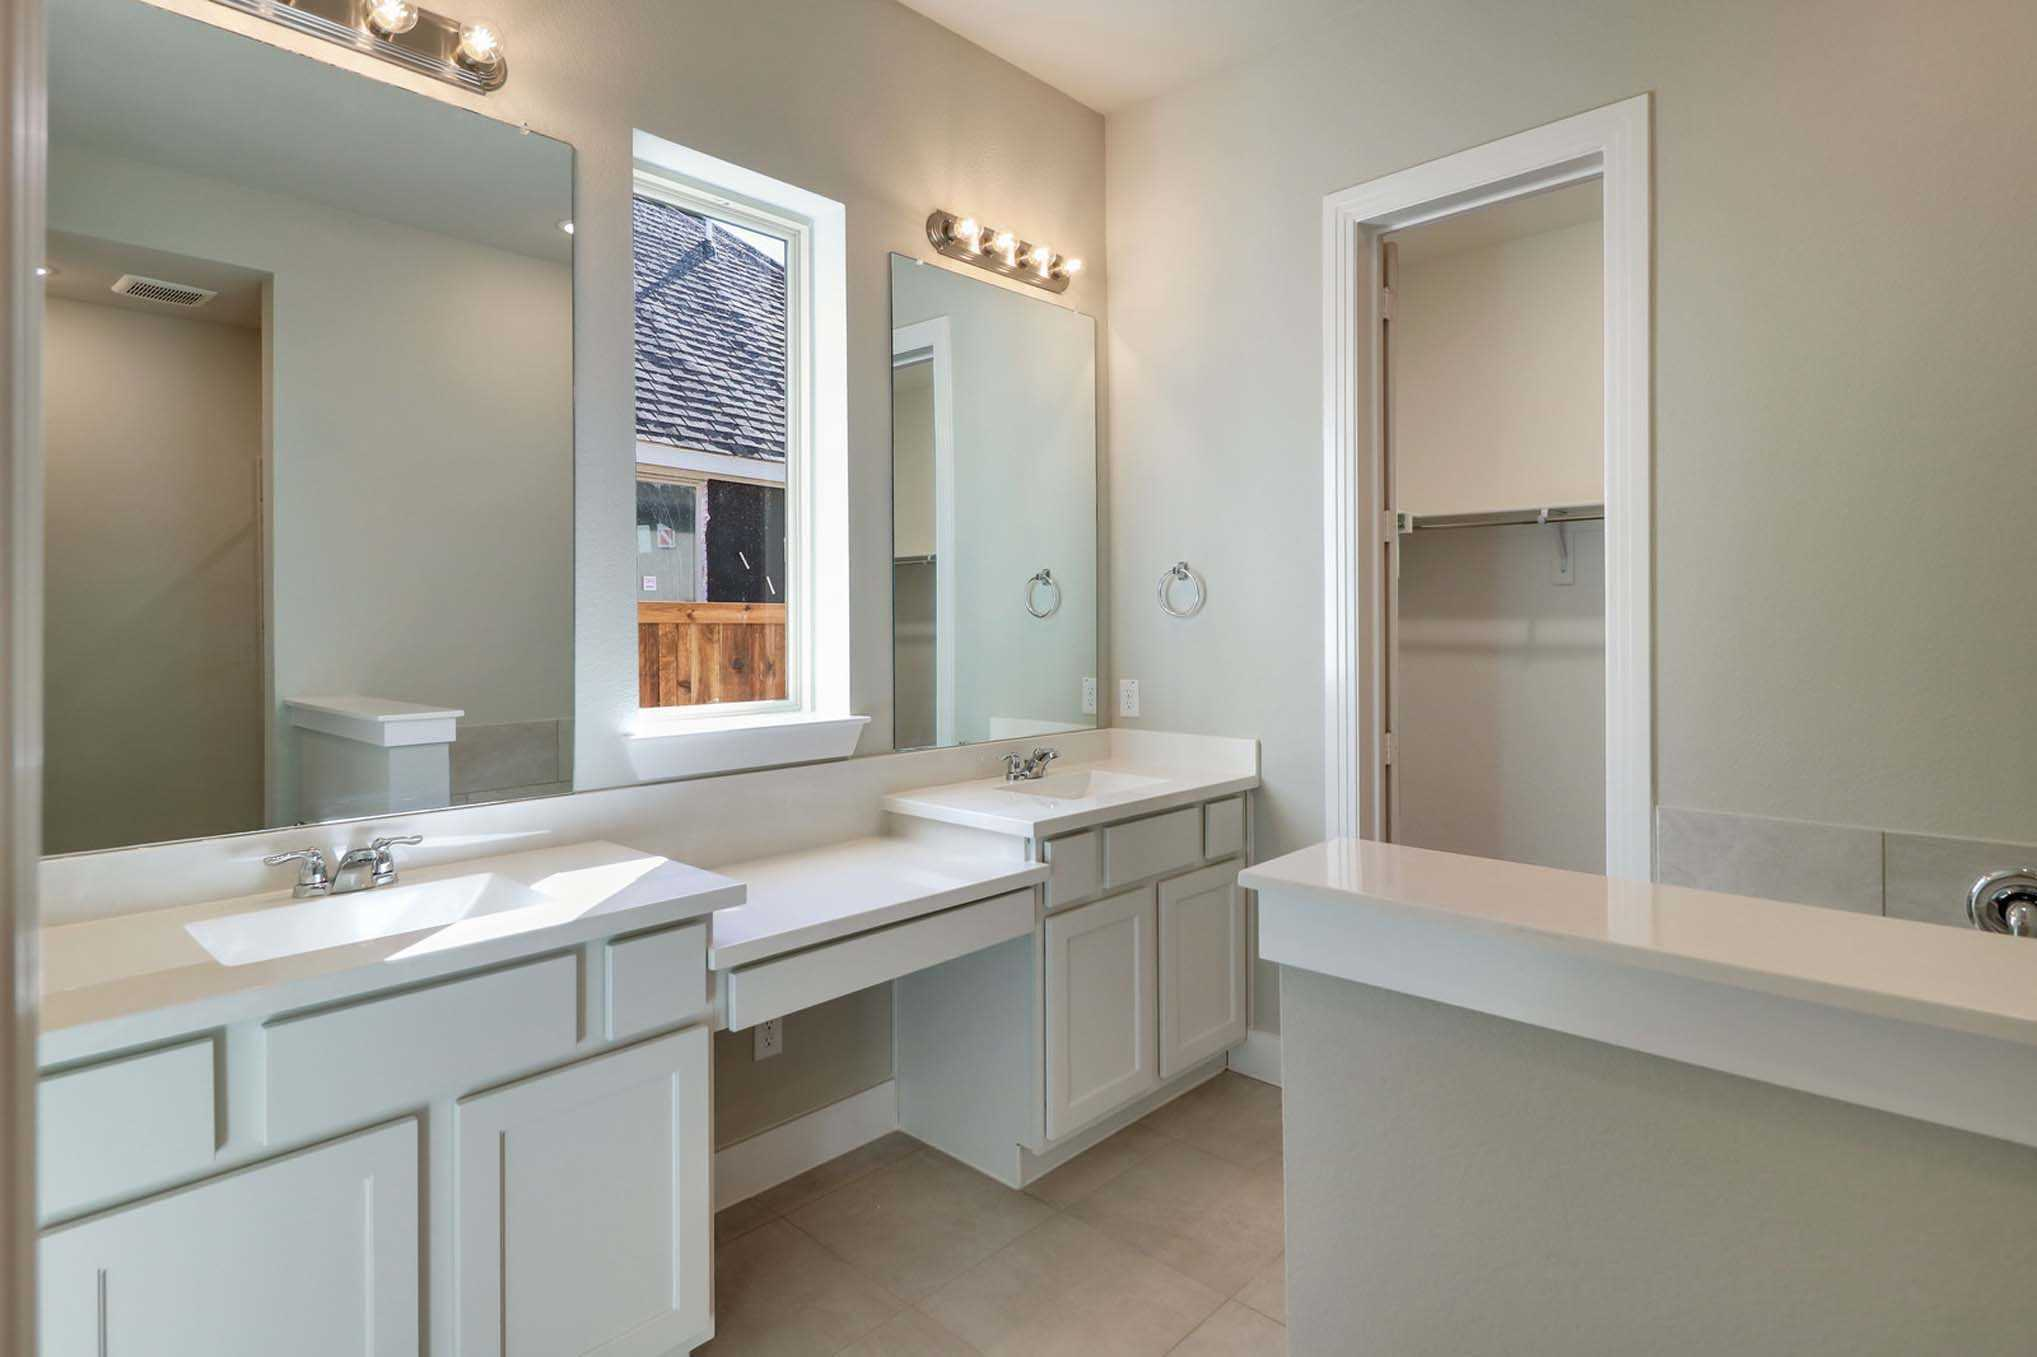 Bathroom featured in the Plan Wimbledon By Highland Homes in Dallas, TX